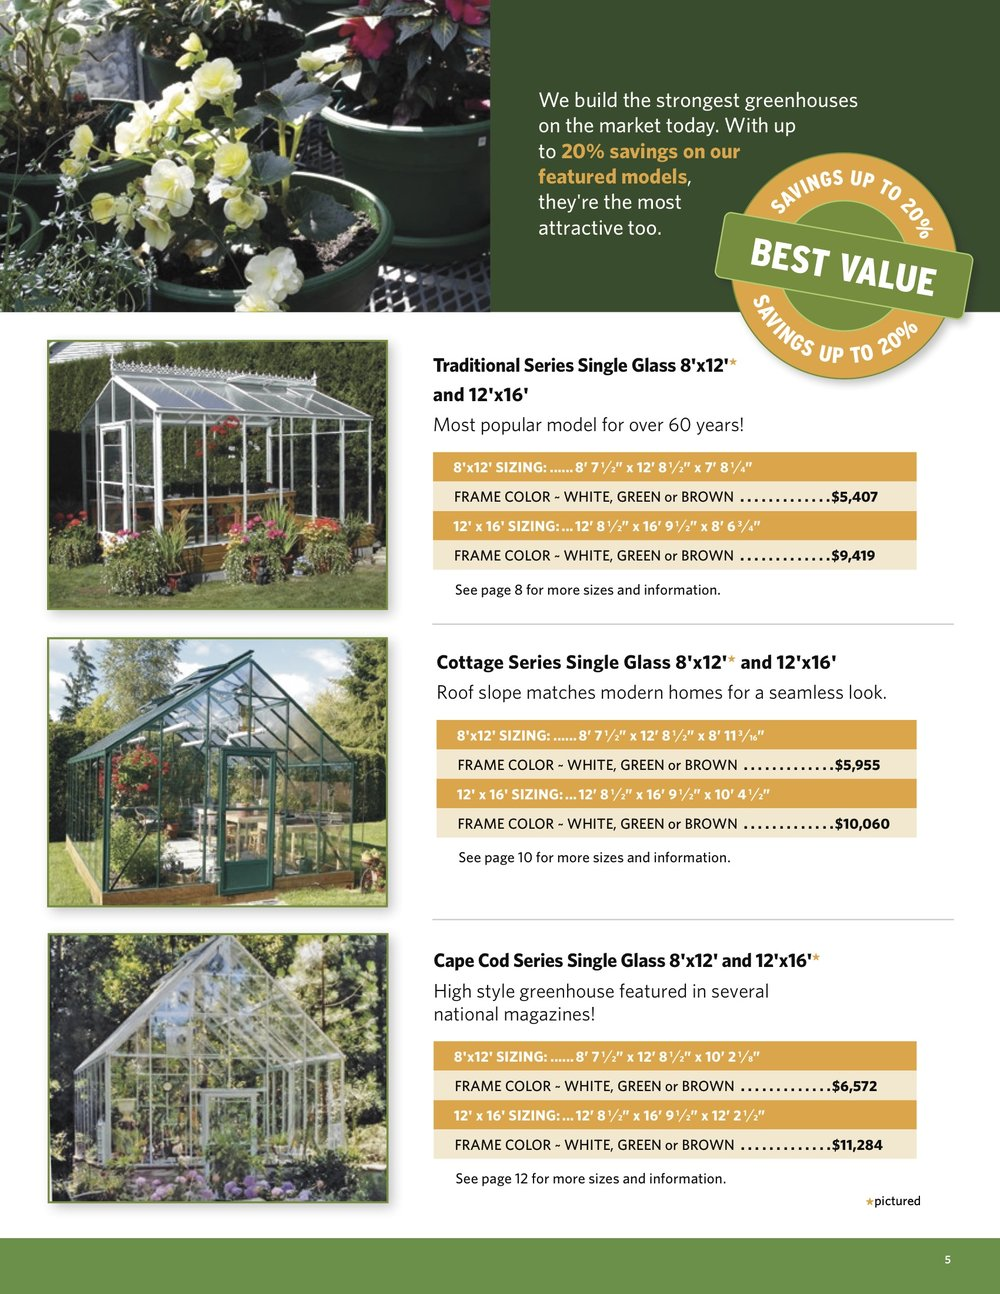 111552_Wisconsin Greenhouse Company_National Catalog (4) (dragged) 4.jpeg